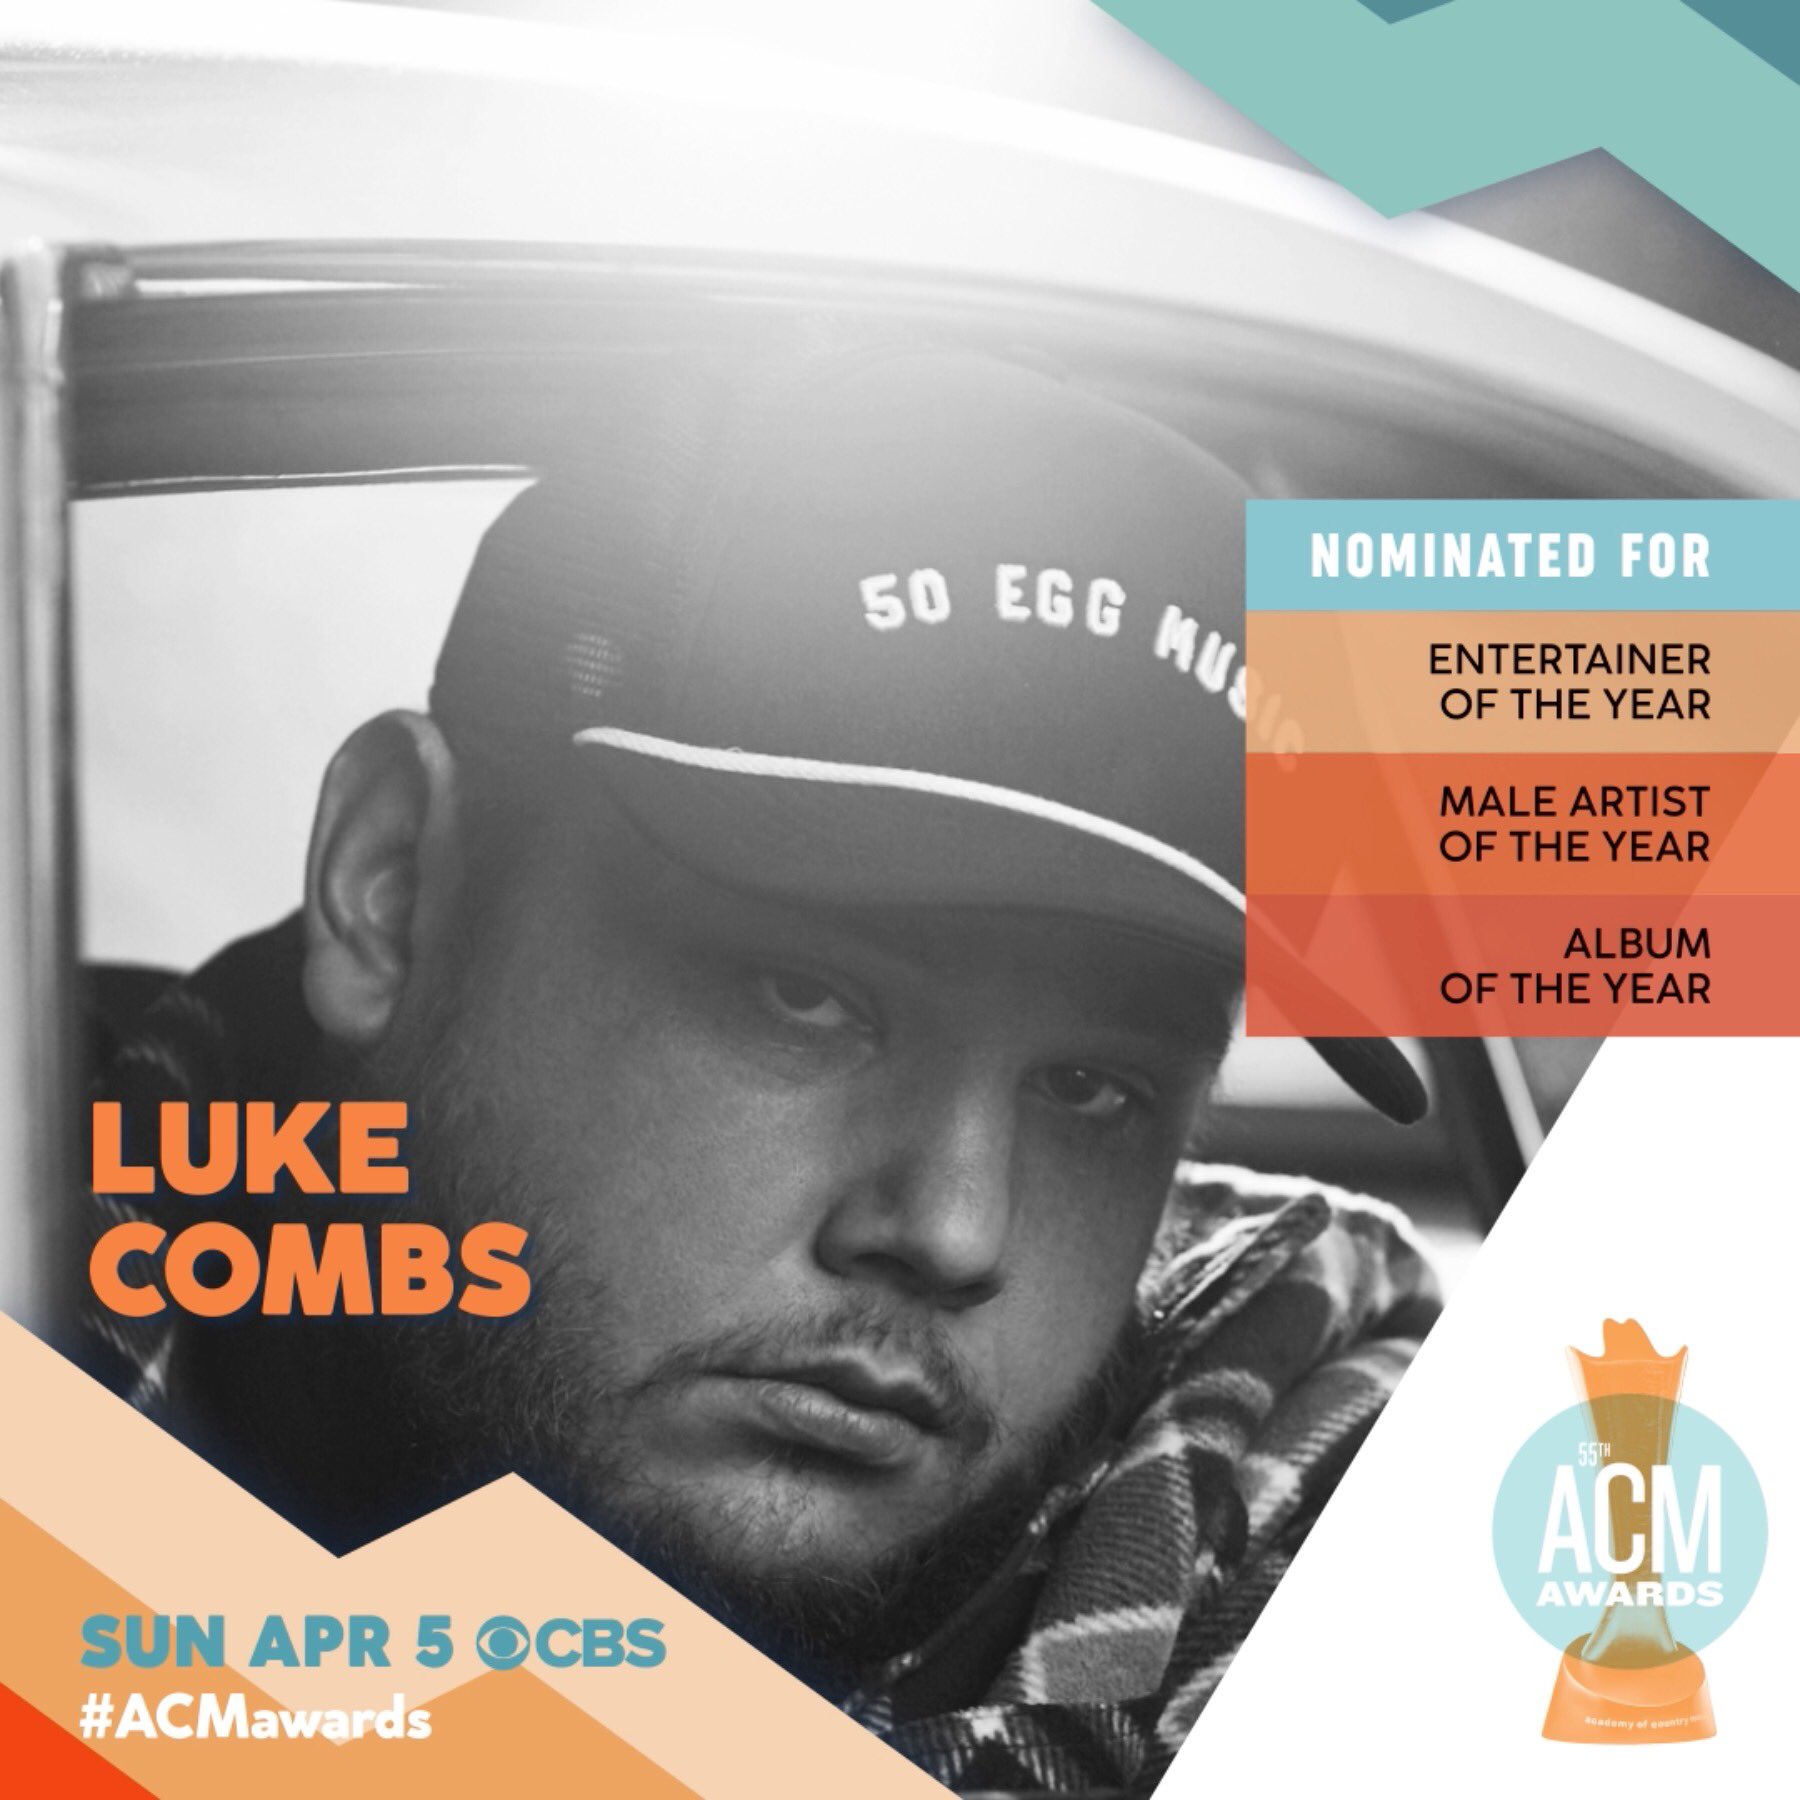 Luke Combs On Twitter Thanks To My Stellar Team The Fans My Family Friends Country Radio And The Acmawards For This Crazy Ride We Re On See Y All In April Https T Co 6qotxj4tjx